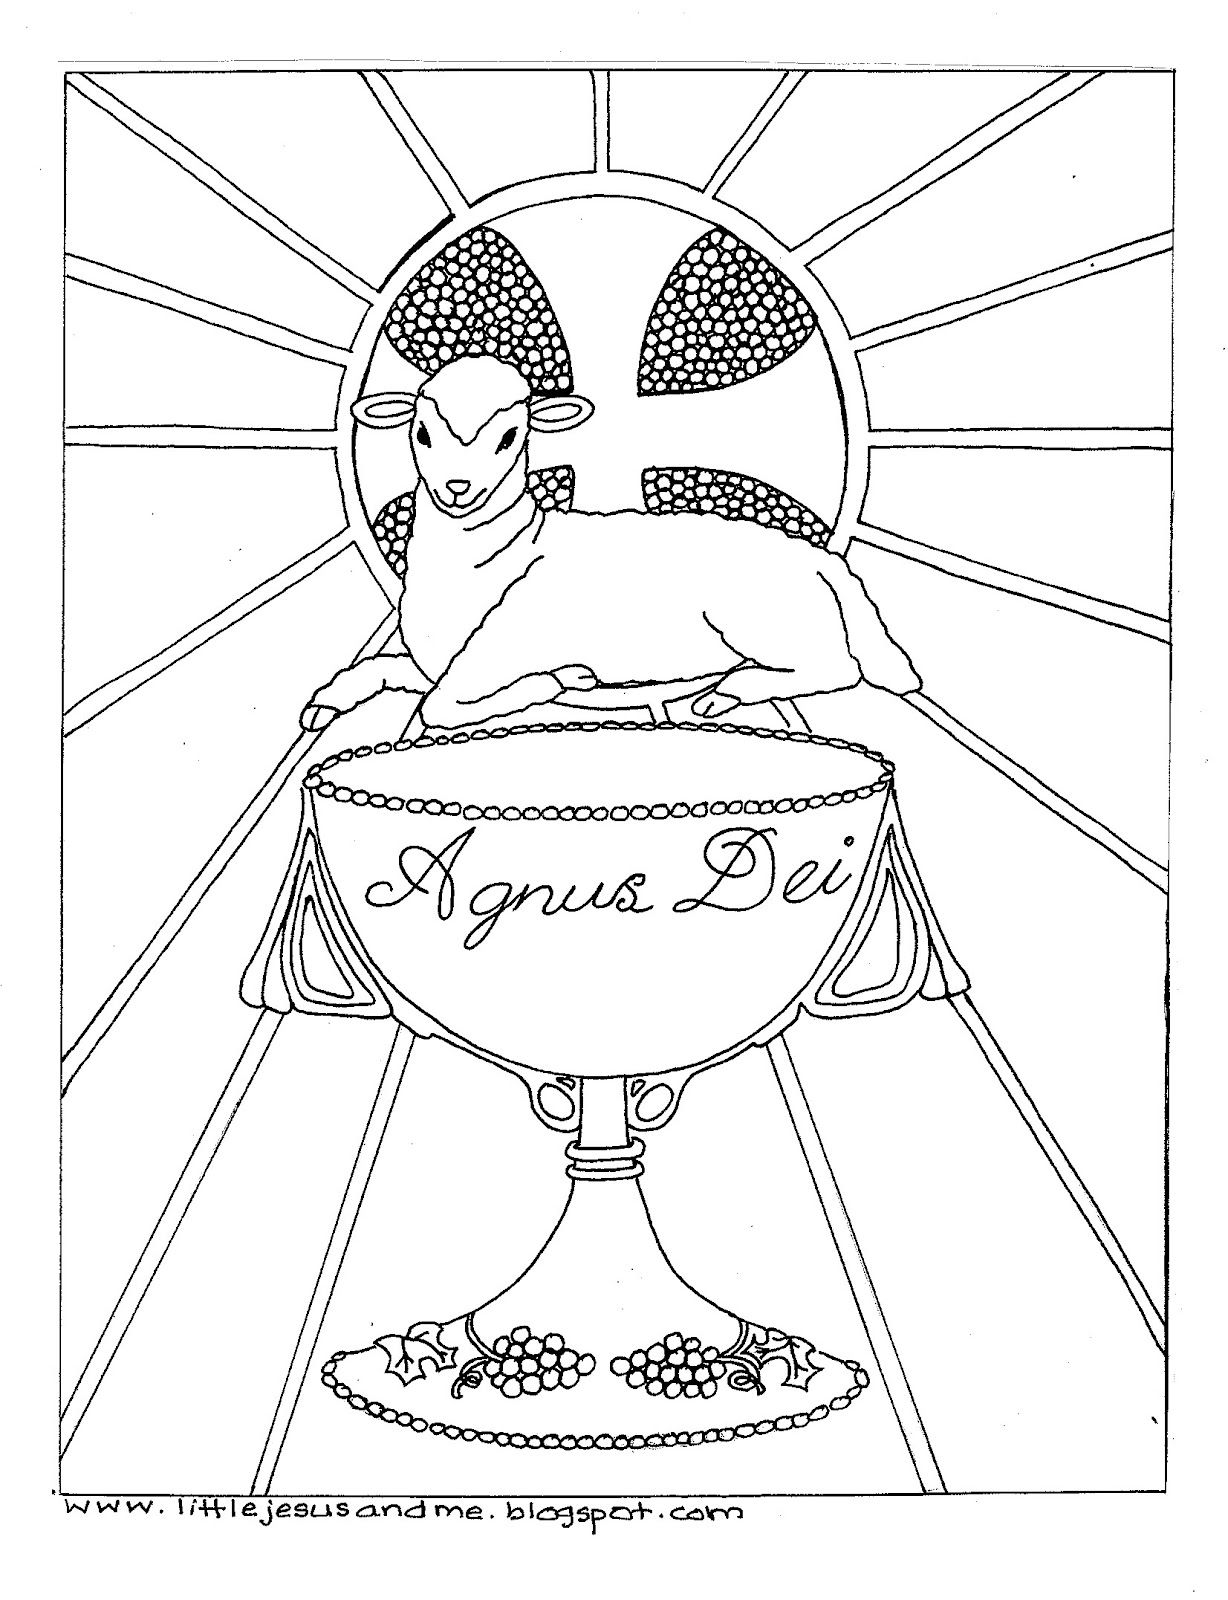 Cute Coloring Page Easter Bunny Coloring Pages Easter Bunny Colouring Easter Coloring Pages